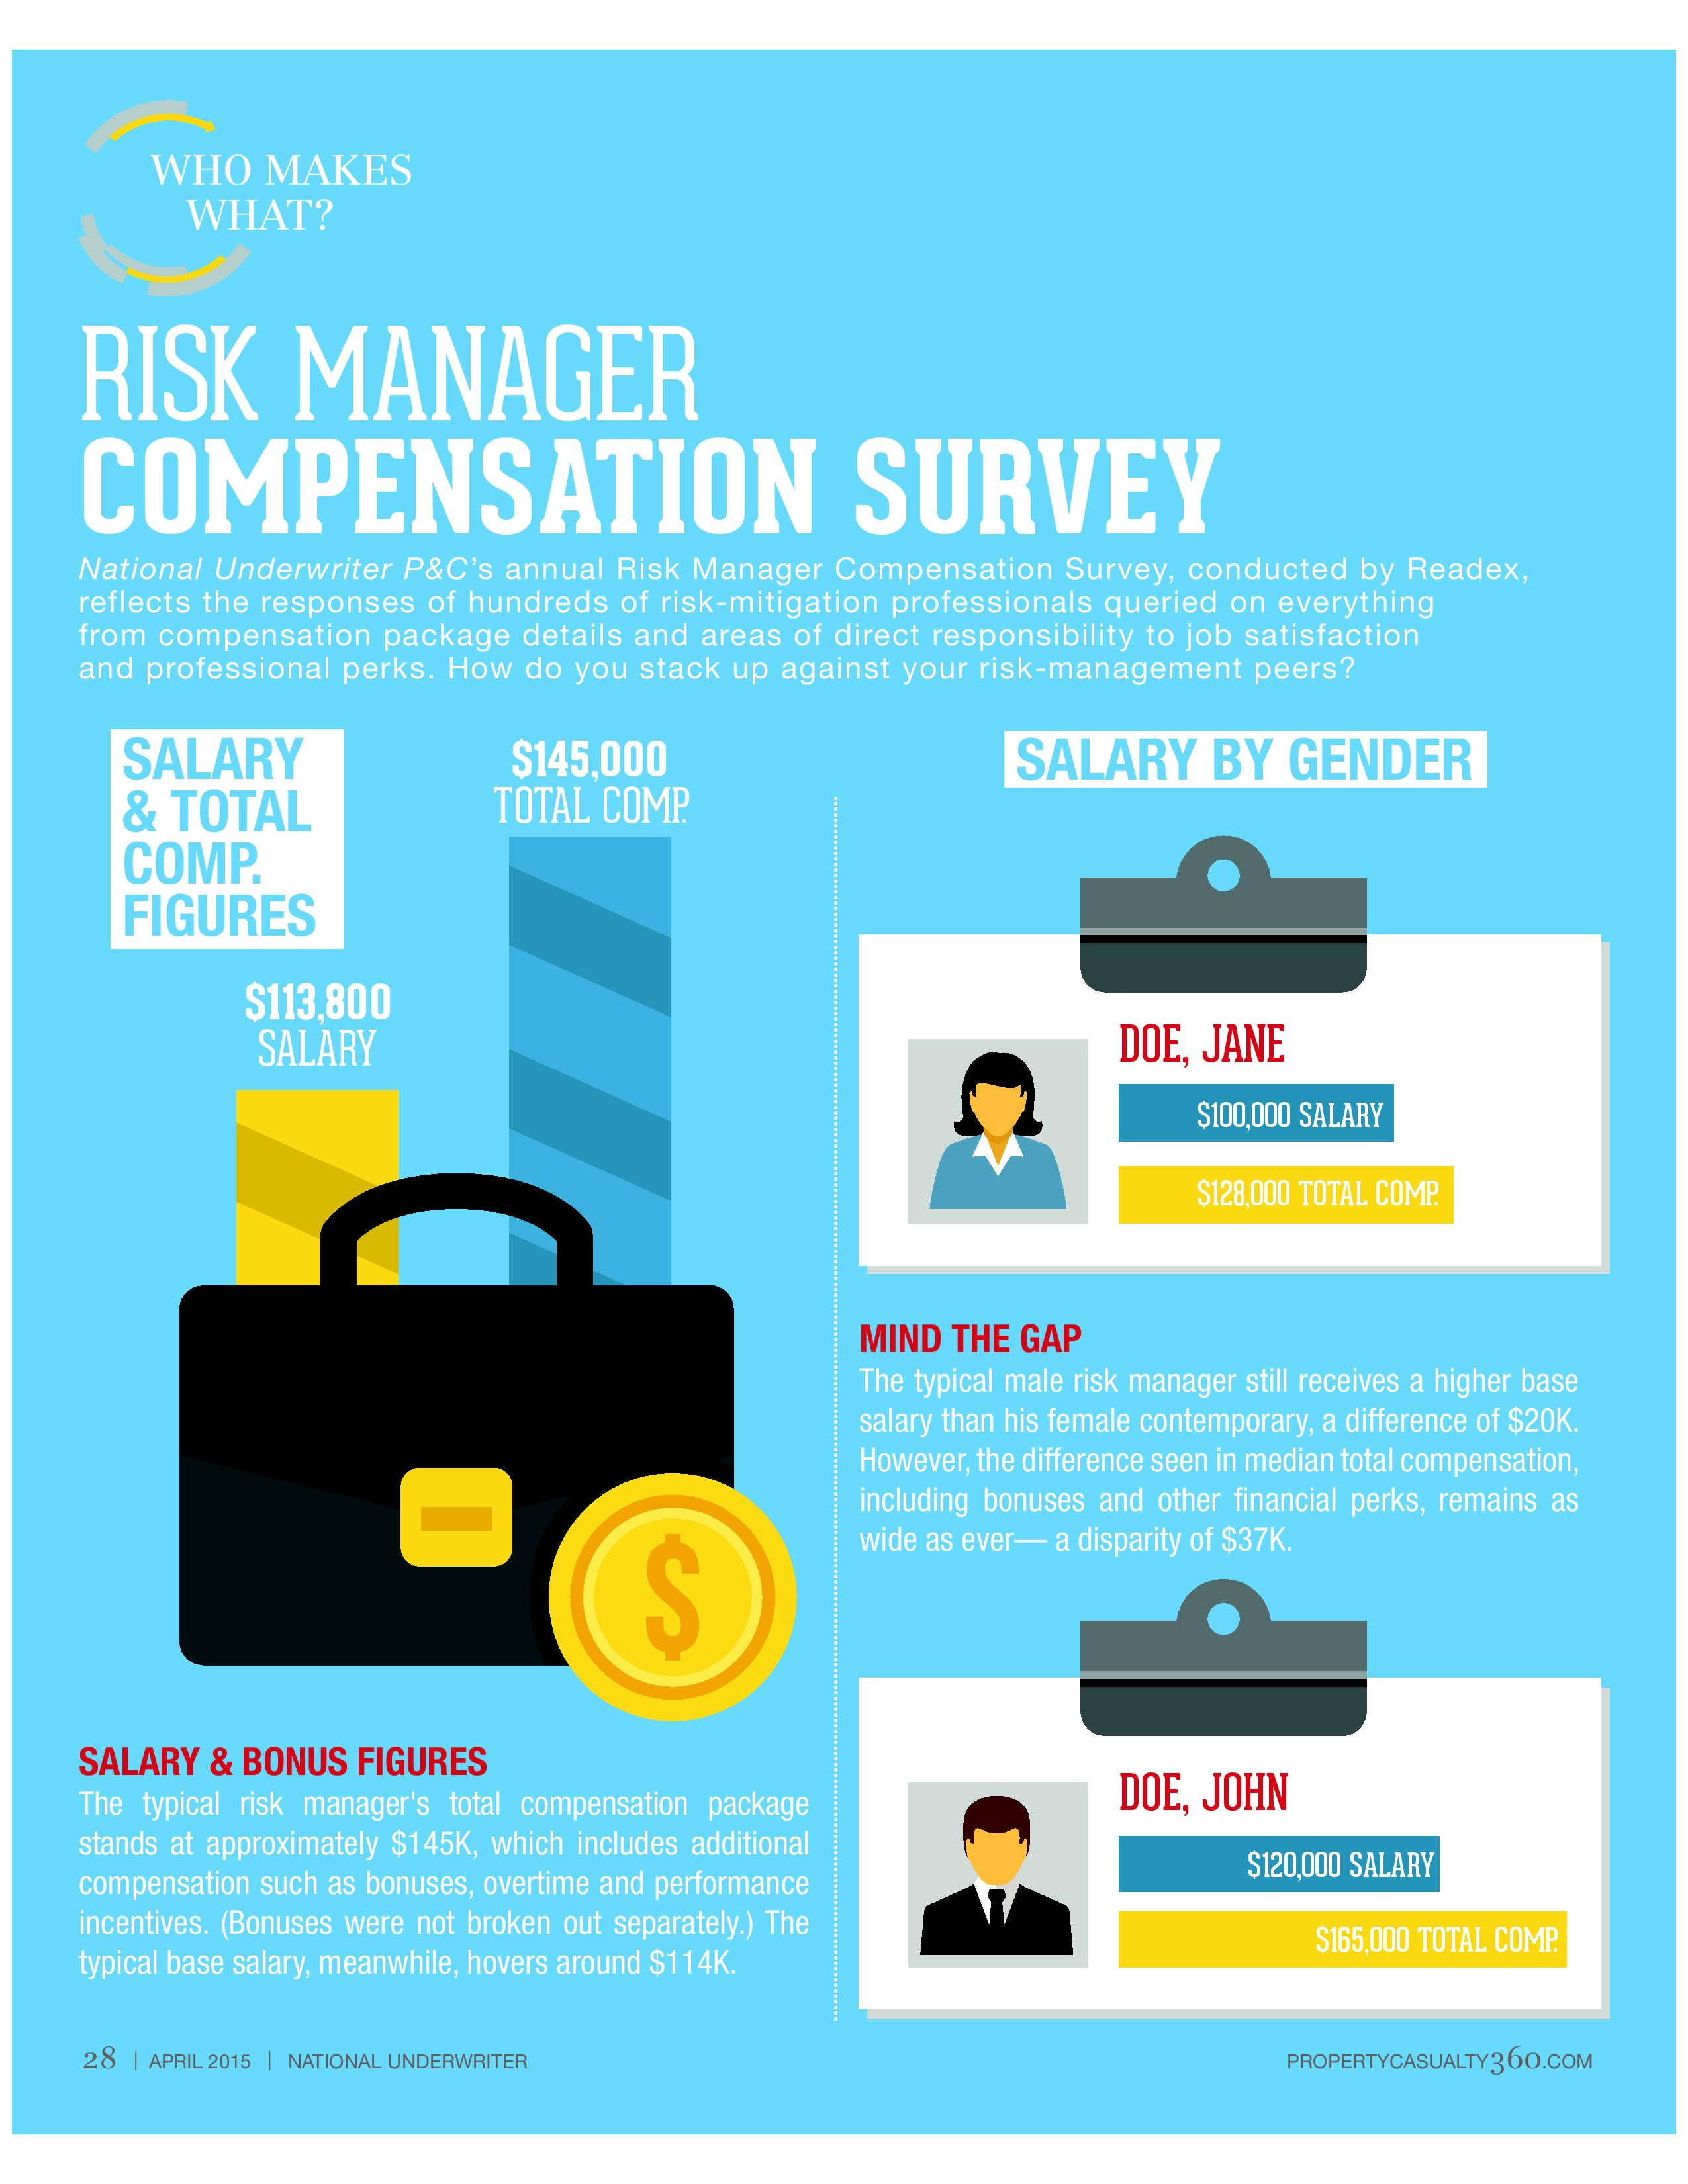 how do you rank the results of nu s risk manager related check out how things have changed since last year nu s 2014 risk manager compensation survey